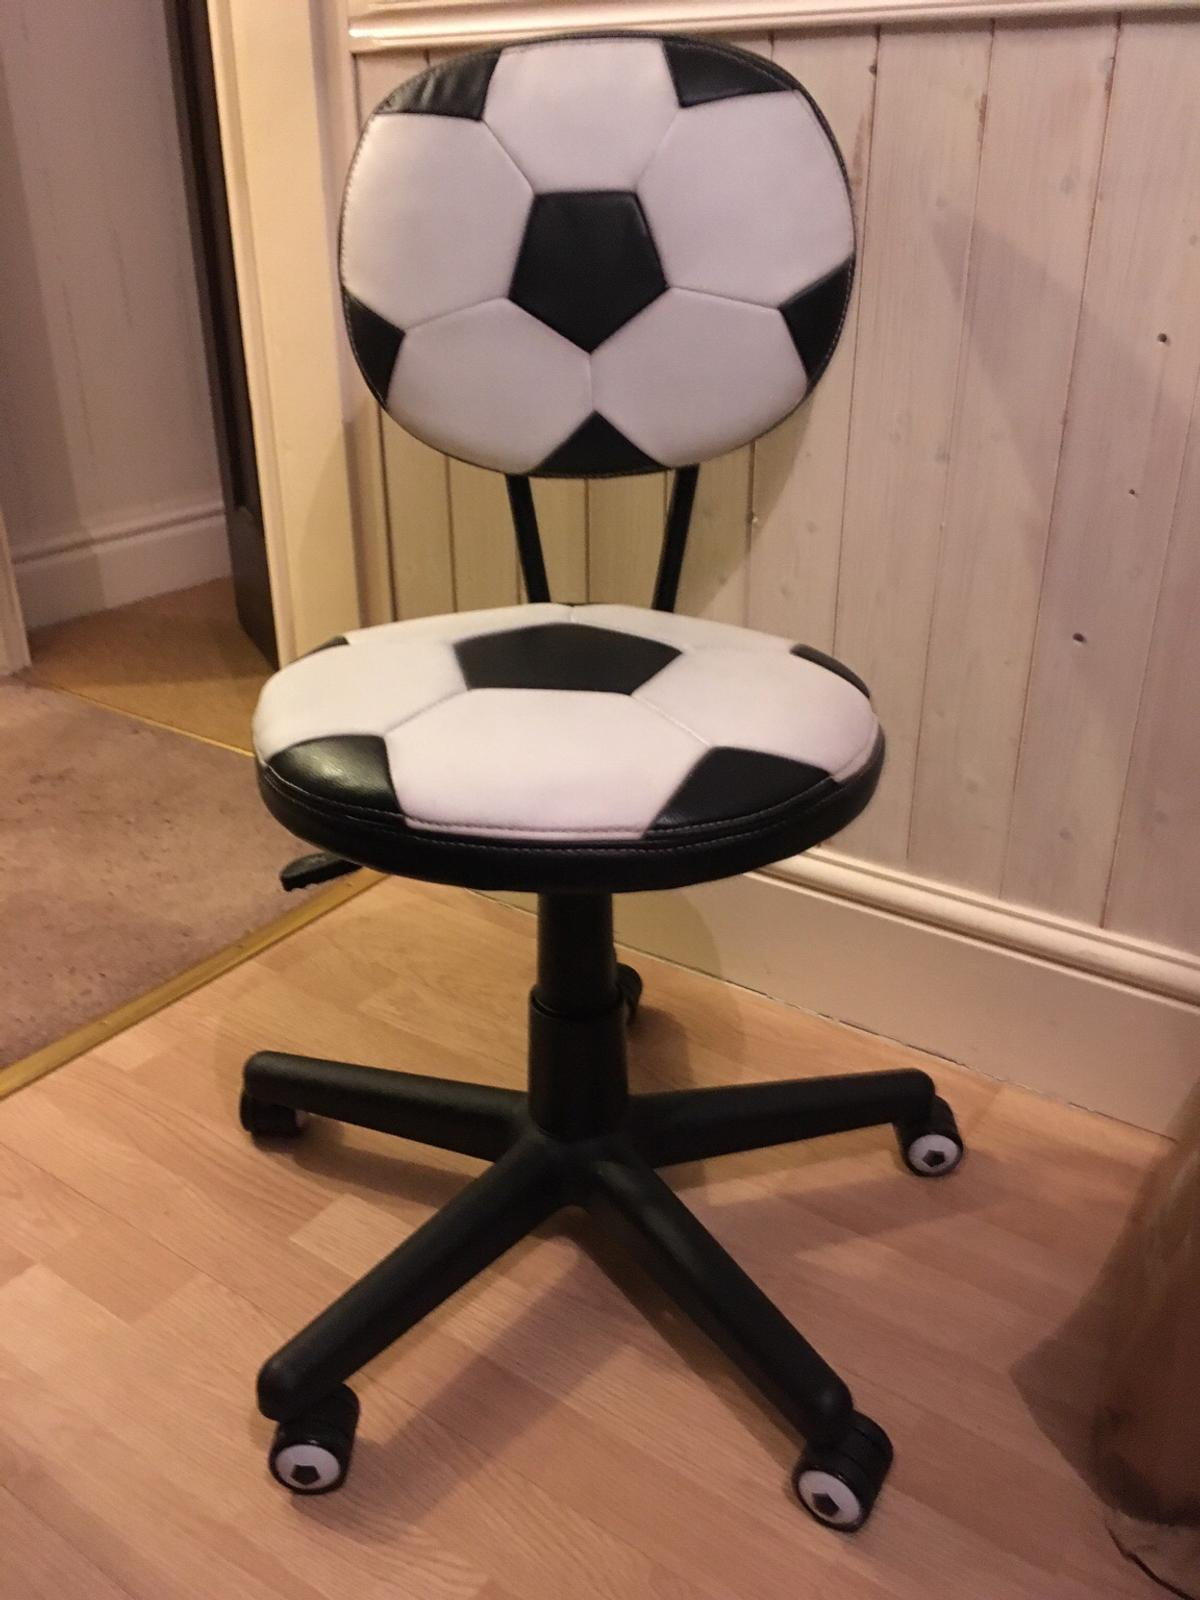 Superb Office Desk Chair Football Pattern In B75 Coldfield For Pdpeps Interior Chair Design Pdpepsorg